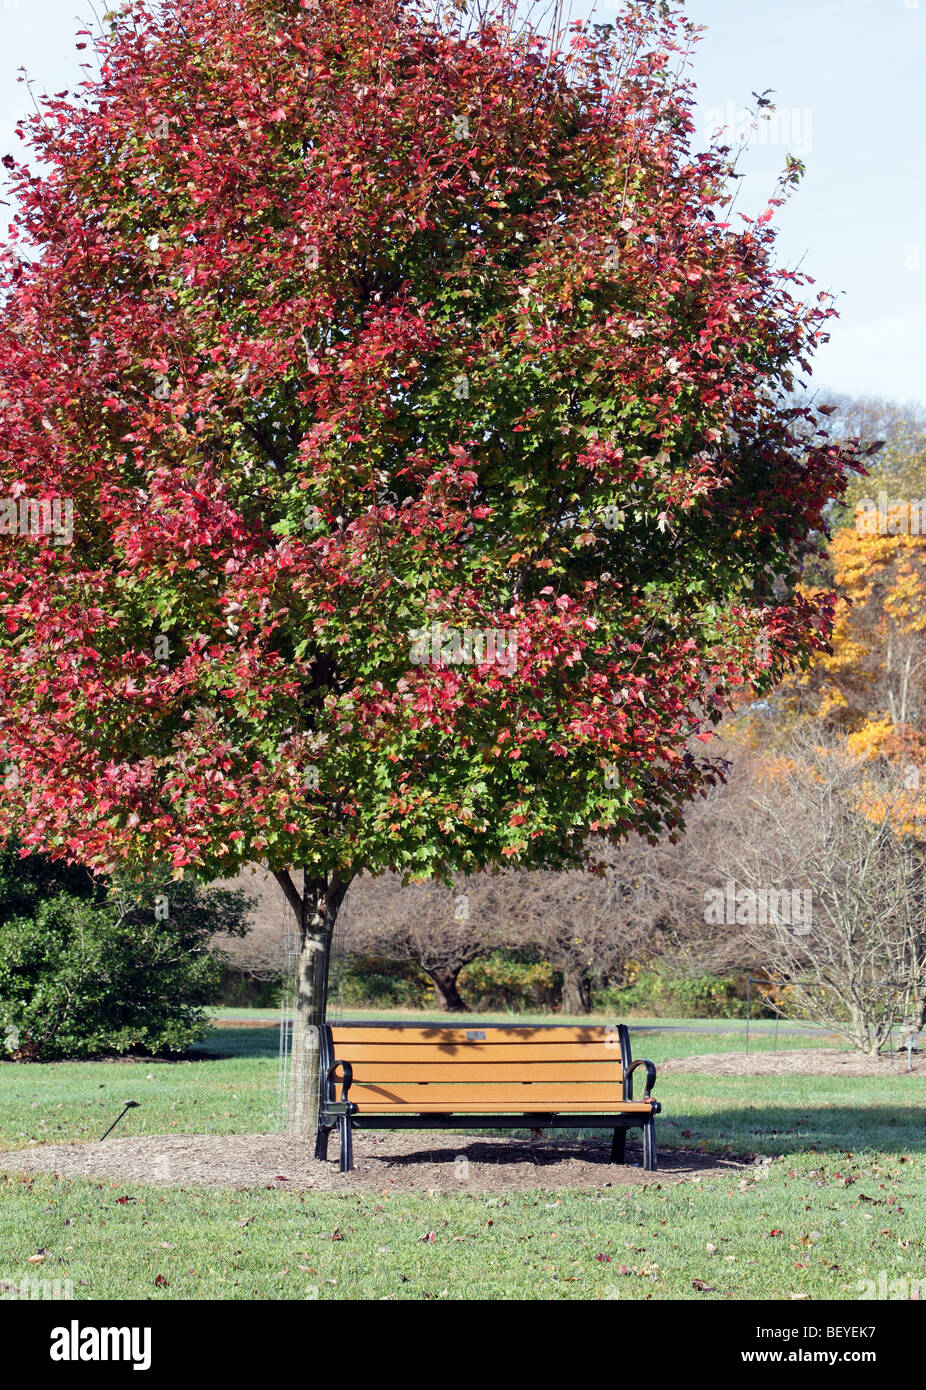 a park bench under a red maple tree acer rubrum an. Black Bedroom Furniture Sets. Home Design Ideas